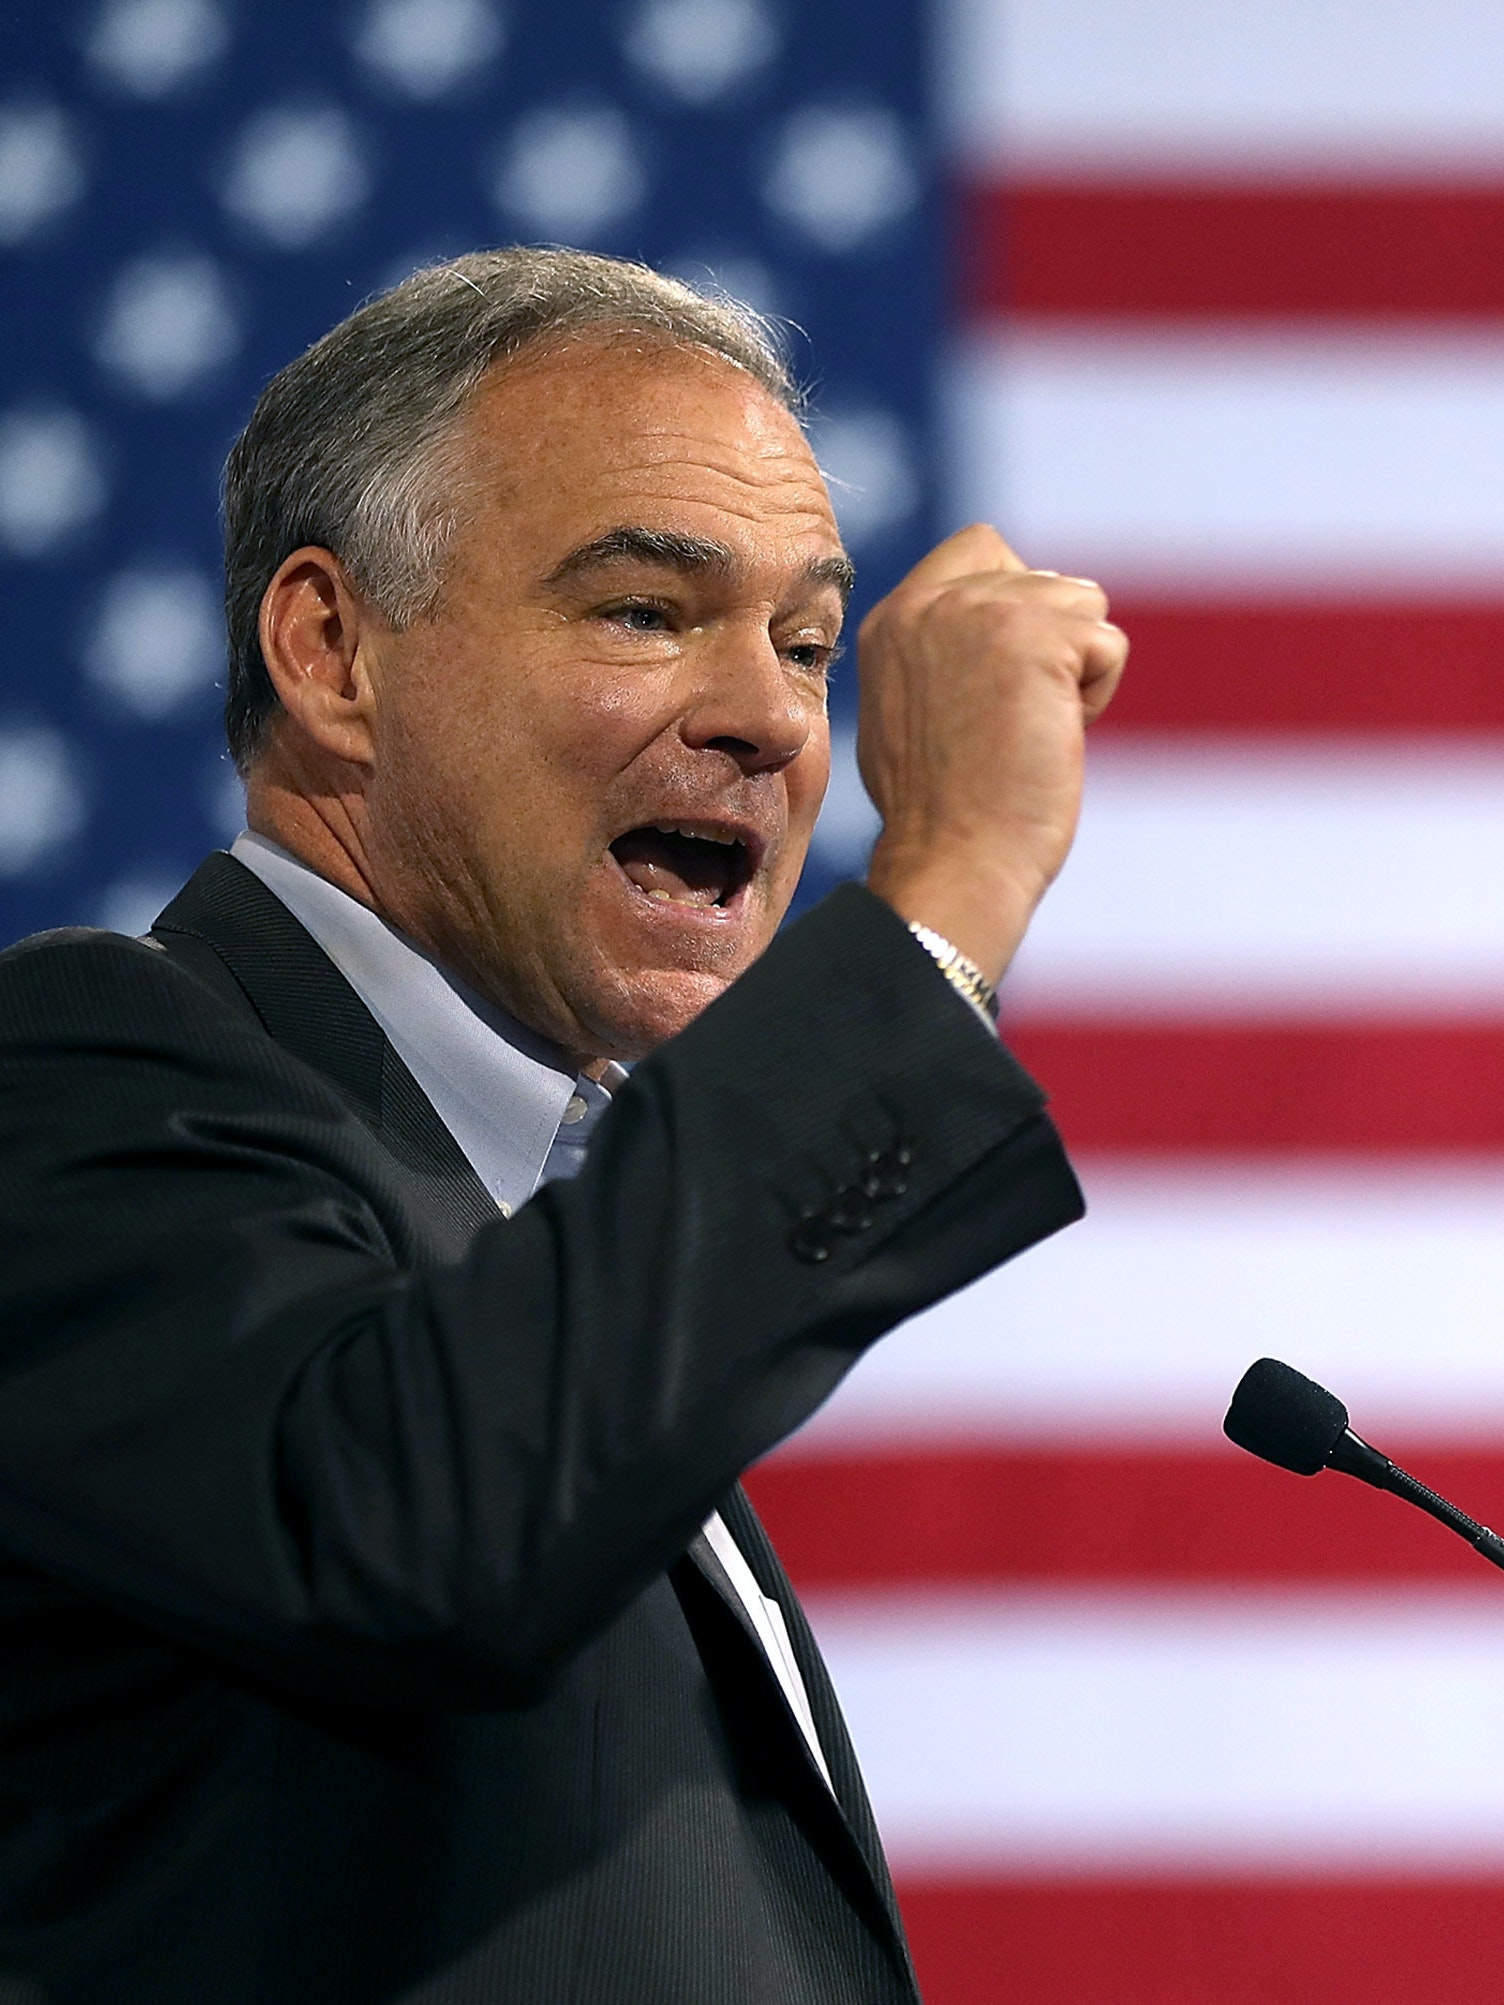 MIAMI, FL - JULY 23:  Democratic vice presidential candidate U.S. Sen. Tim Kaine (D-VA) speaks during a campaign rally with Democratic presidential candidate former Secretary of State Hillary Clinton at Florida International University Panther Arena on July 23, 2016 in Miami, Florida. Hillary Clinton and  Tim Kaine made their first public appearance together a day after the Clinton campaign announced Senator Kaine as the Democratic vice presidential candidate.   (Photo by Justin Sullivan/Getty Images)